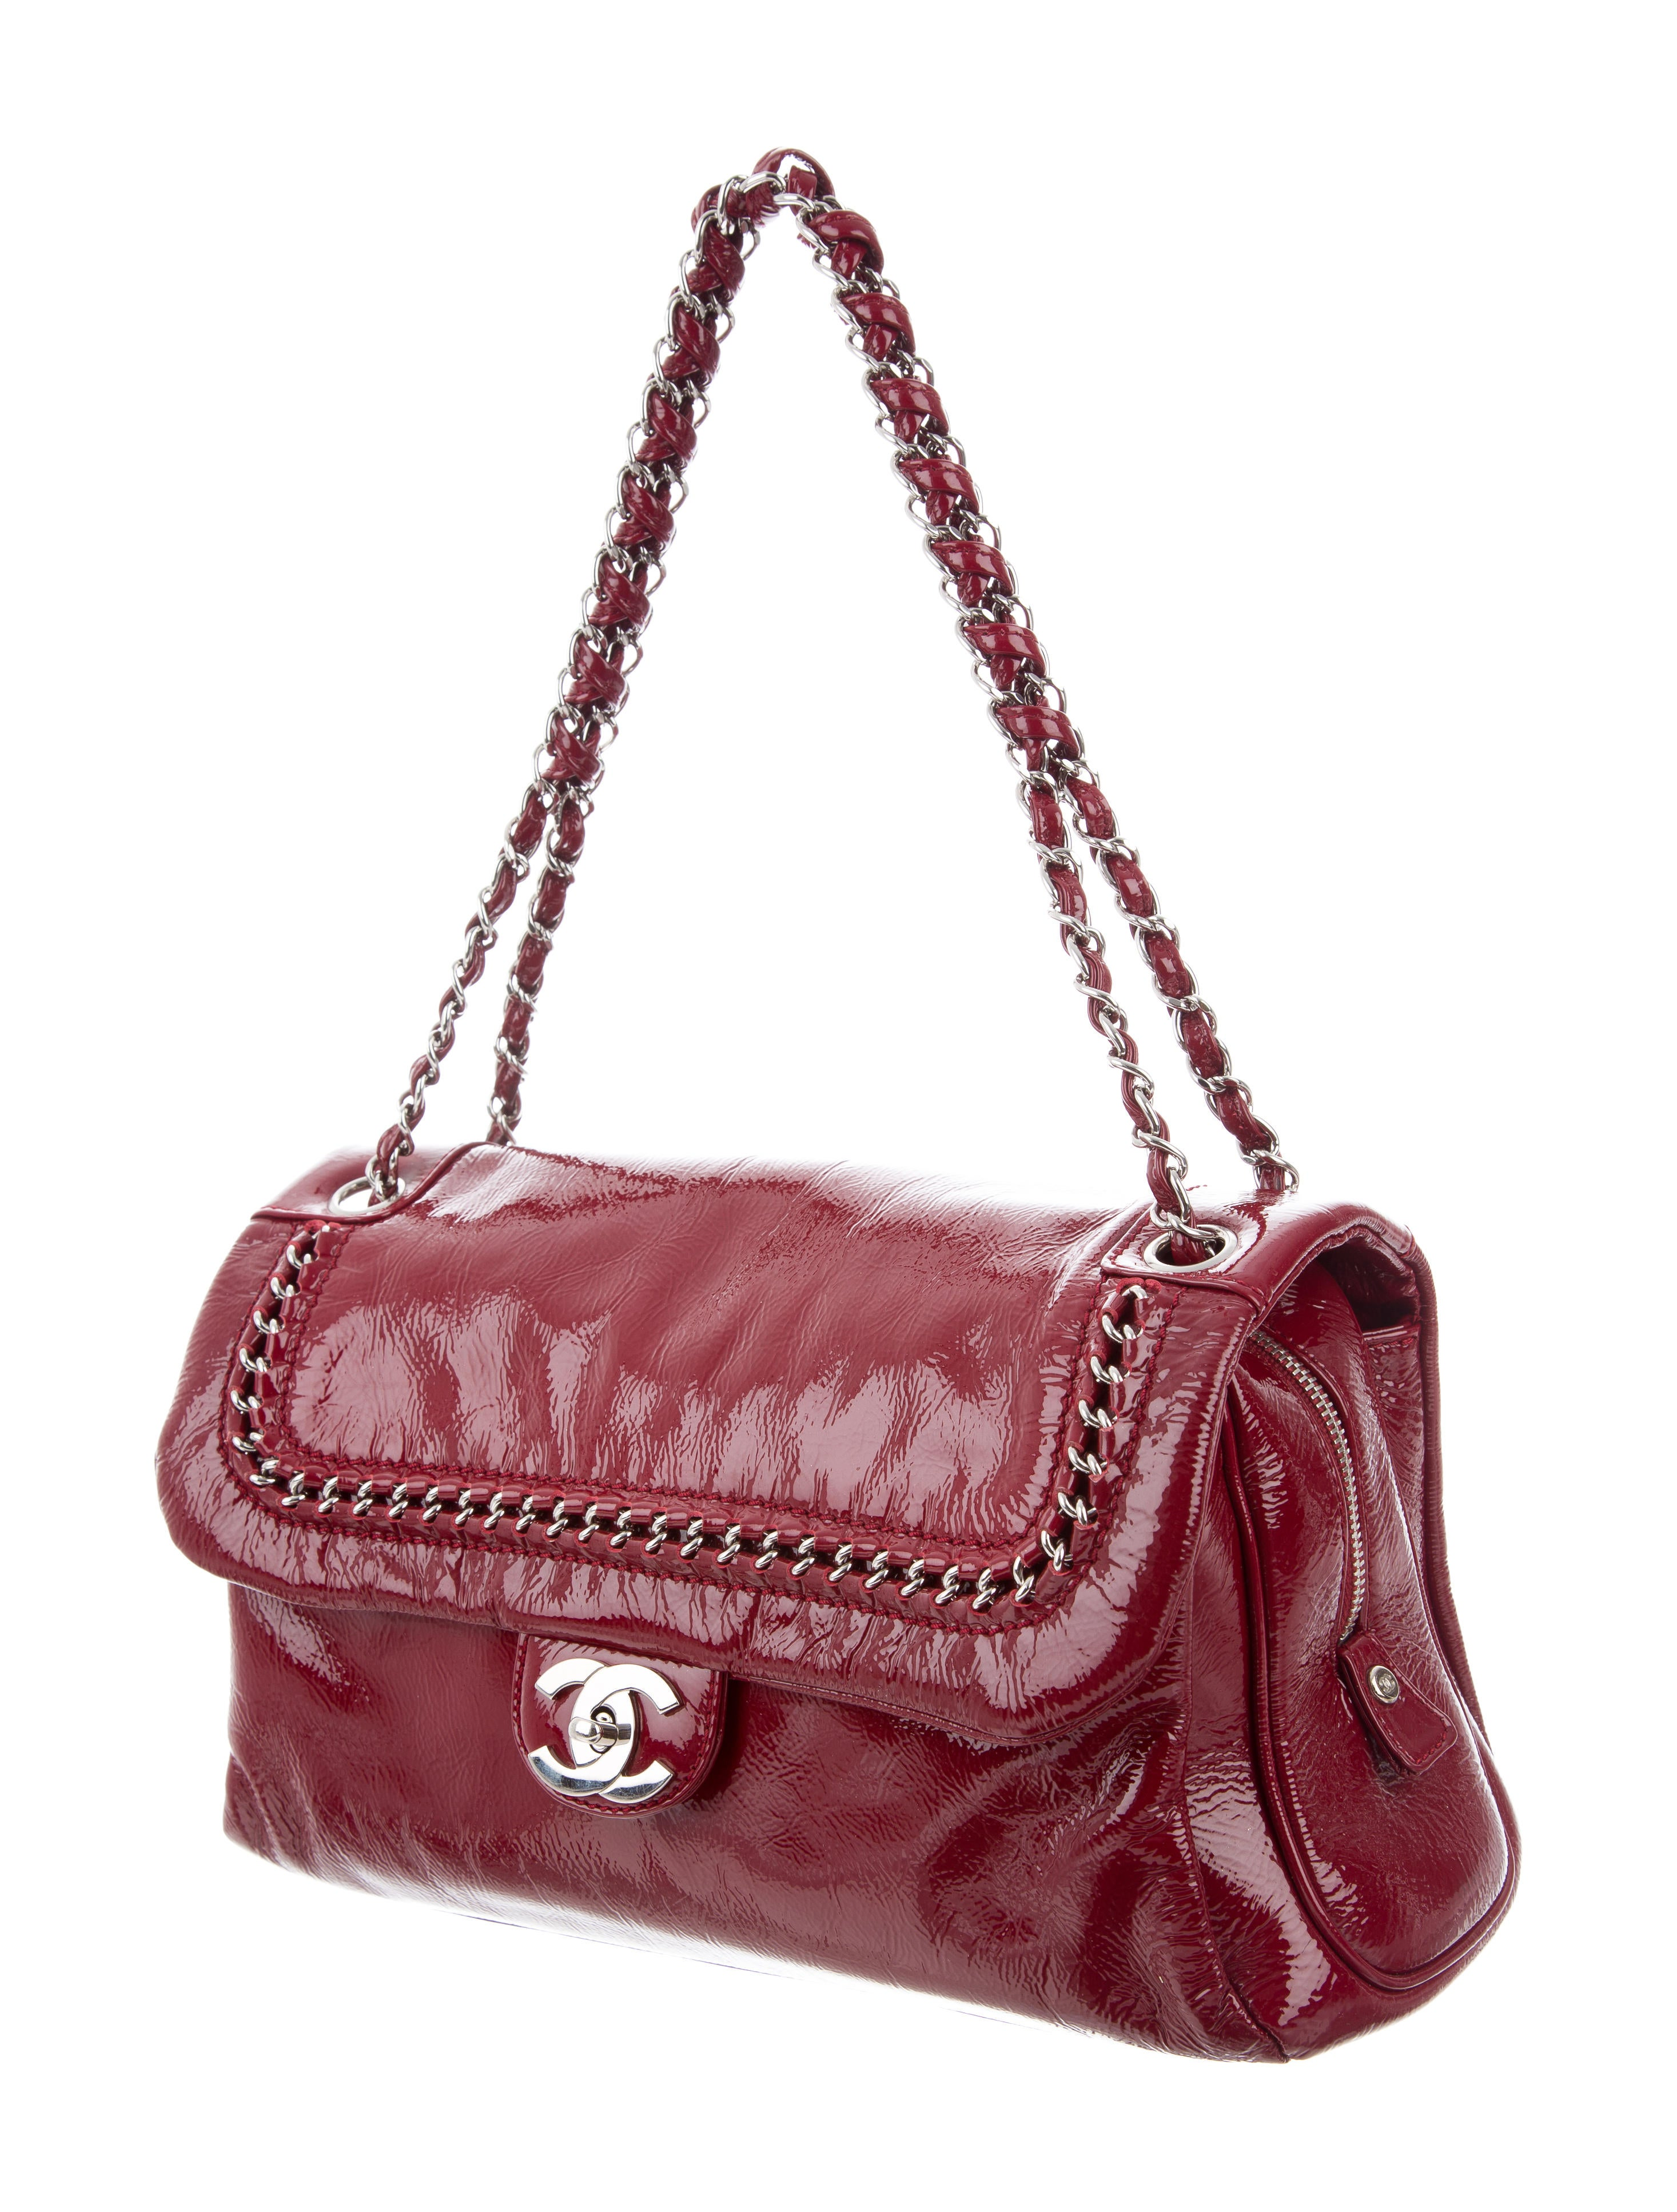 ff8500d3fef2 Chanel Modern Chain Flap Bag | Stanford Center for Opportunity ...